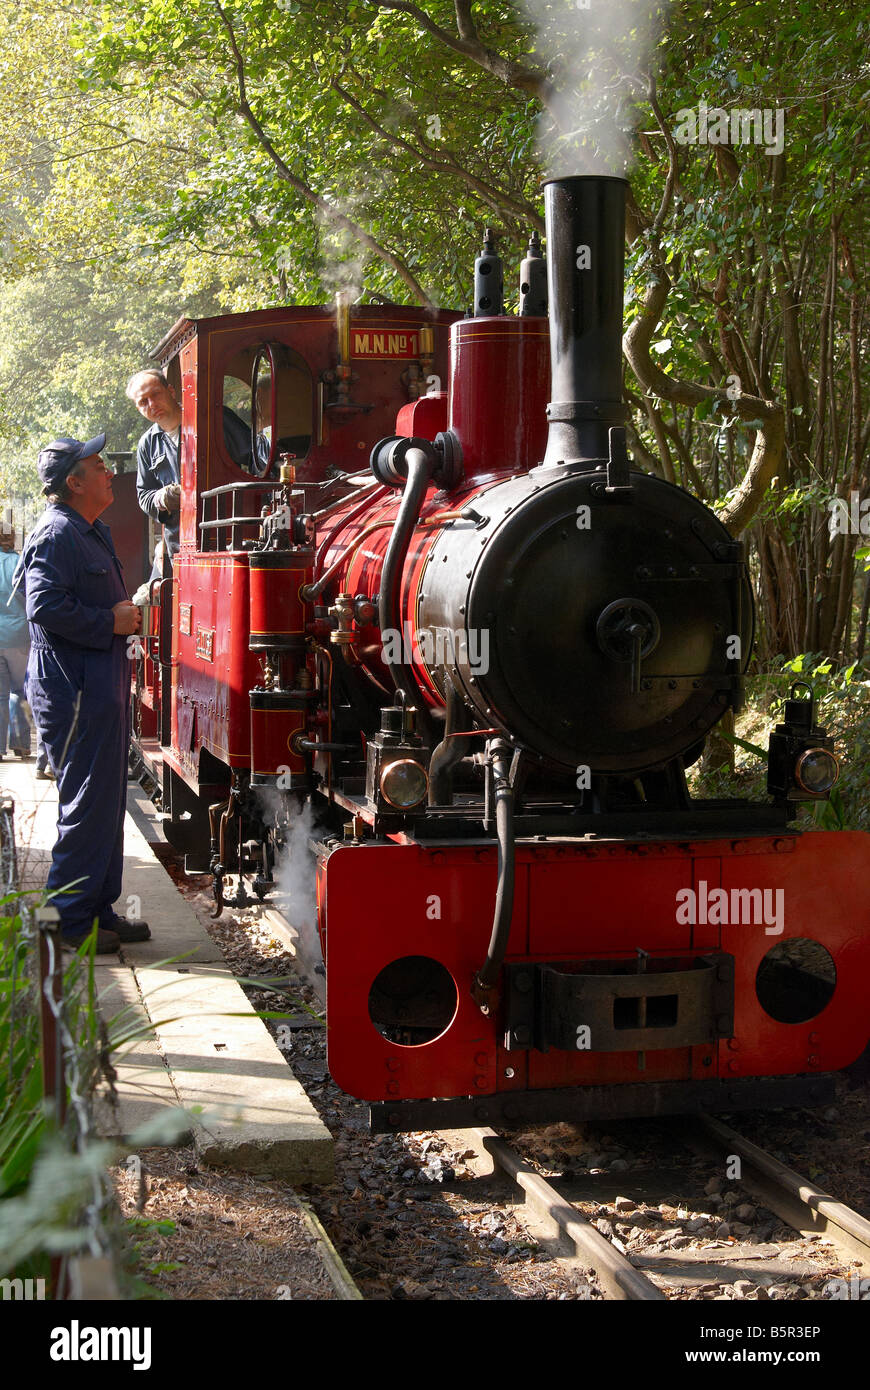 The Old Kiln Light Railway at the Rural Life Centre, Tilford, Surrey with Orenstein & Koppel engine Elouise. - Stock Image